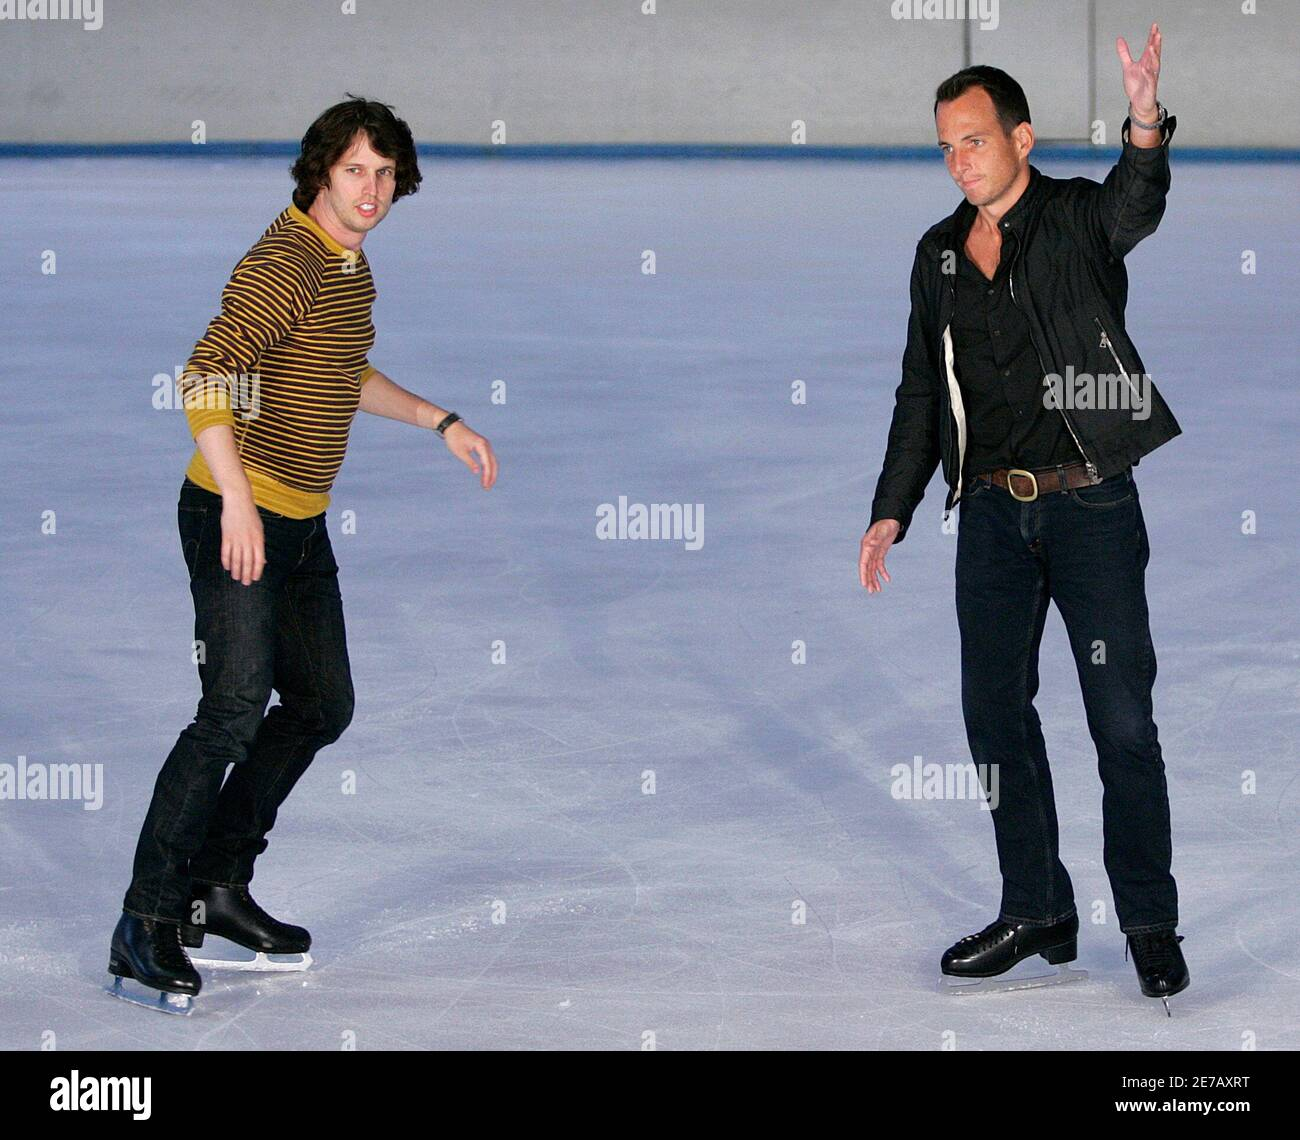 """Actors Jon Heder (L) and Will Arnett pose for photographers during a media opportunity at an ice skating rink to promote their film """"Blades of Glory"""" in Sydney June 6, 2007.         REUTERS/Tim Wimborne     (AUSTRALIA) Foto Stock"""